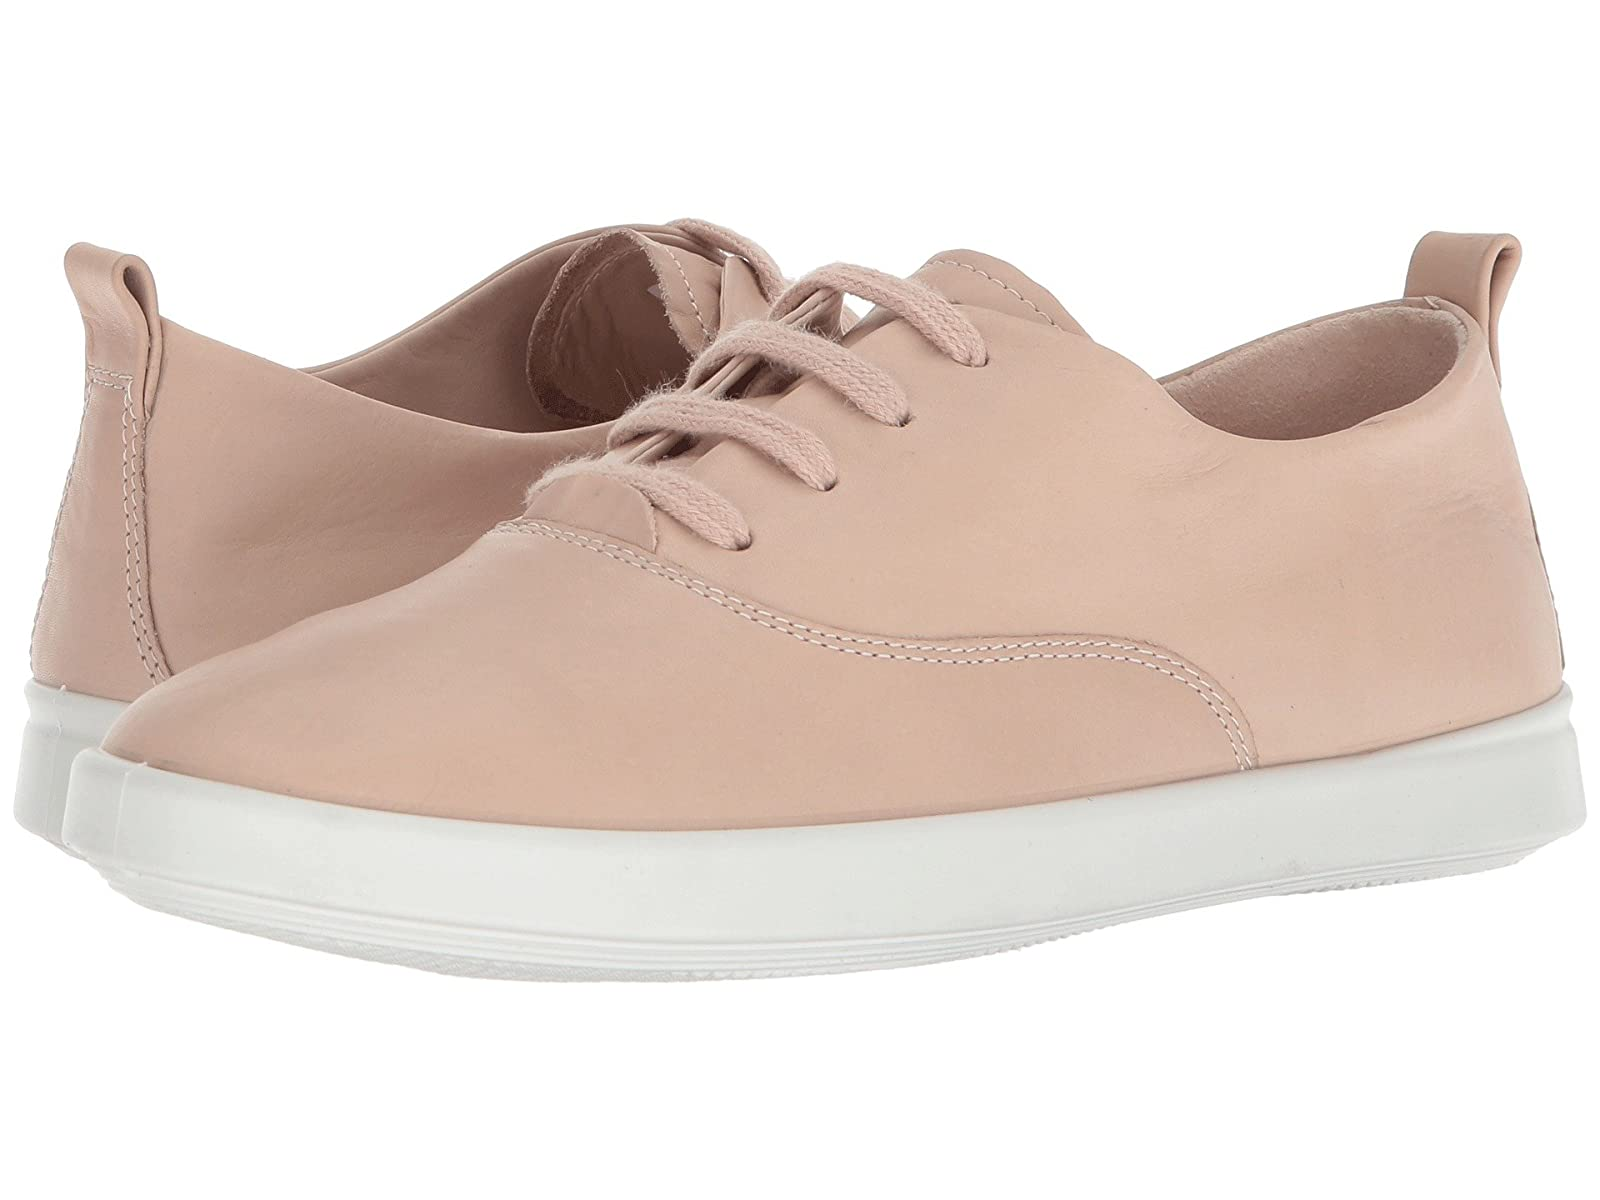 ECCO Leisure TieAtmospheric grades have affordable shoes